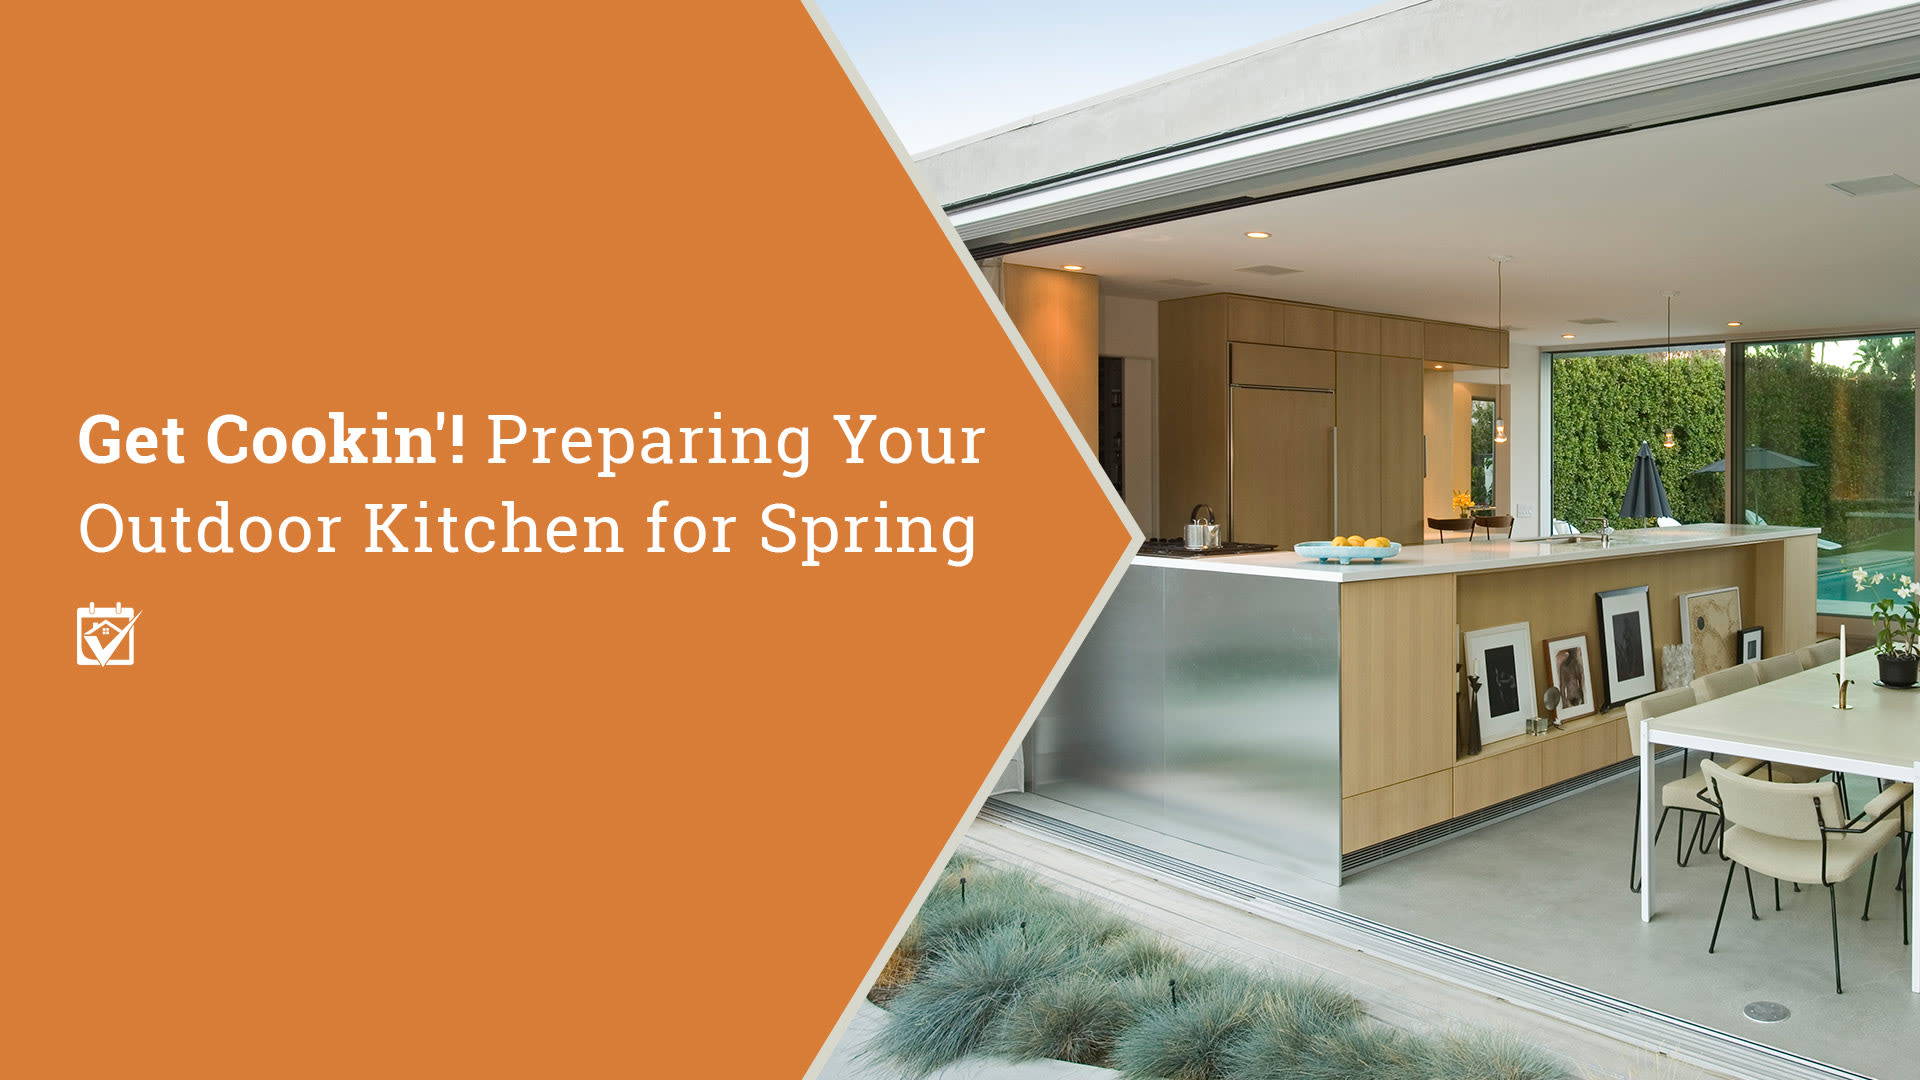 Get Cookin'! Preparing Your Outdoor Kitchen for Spring